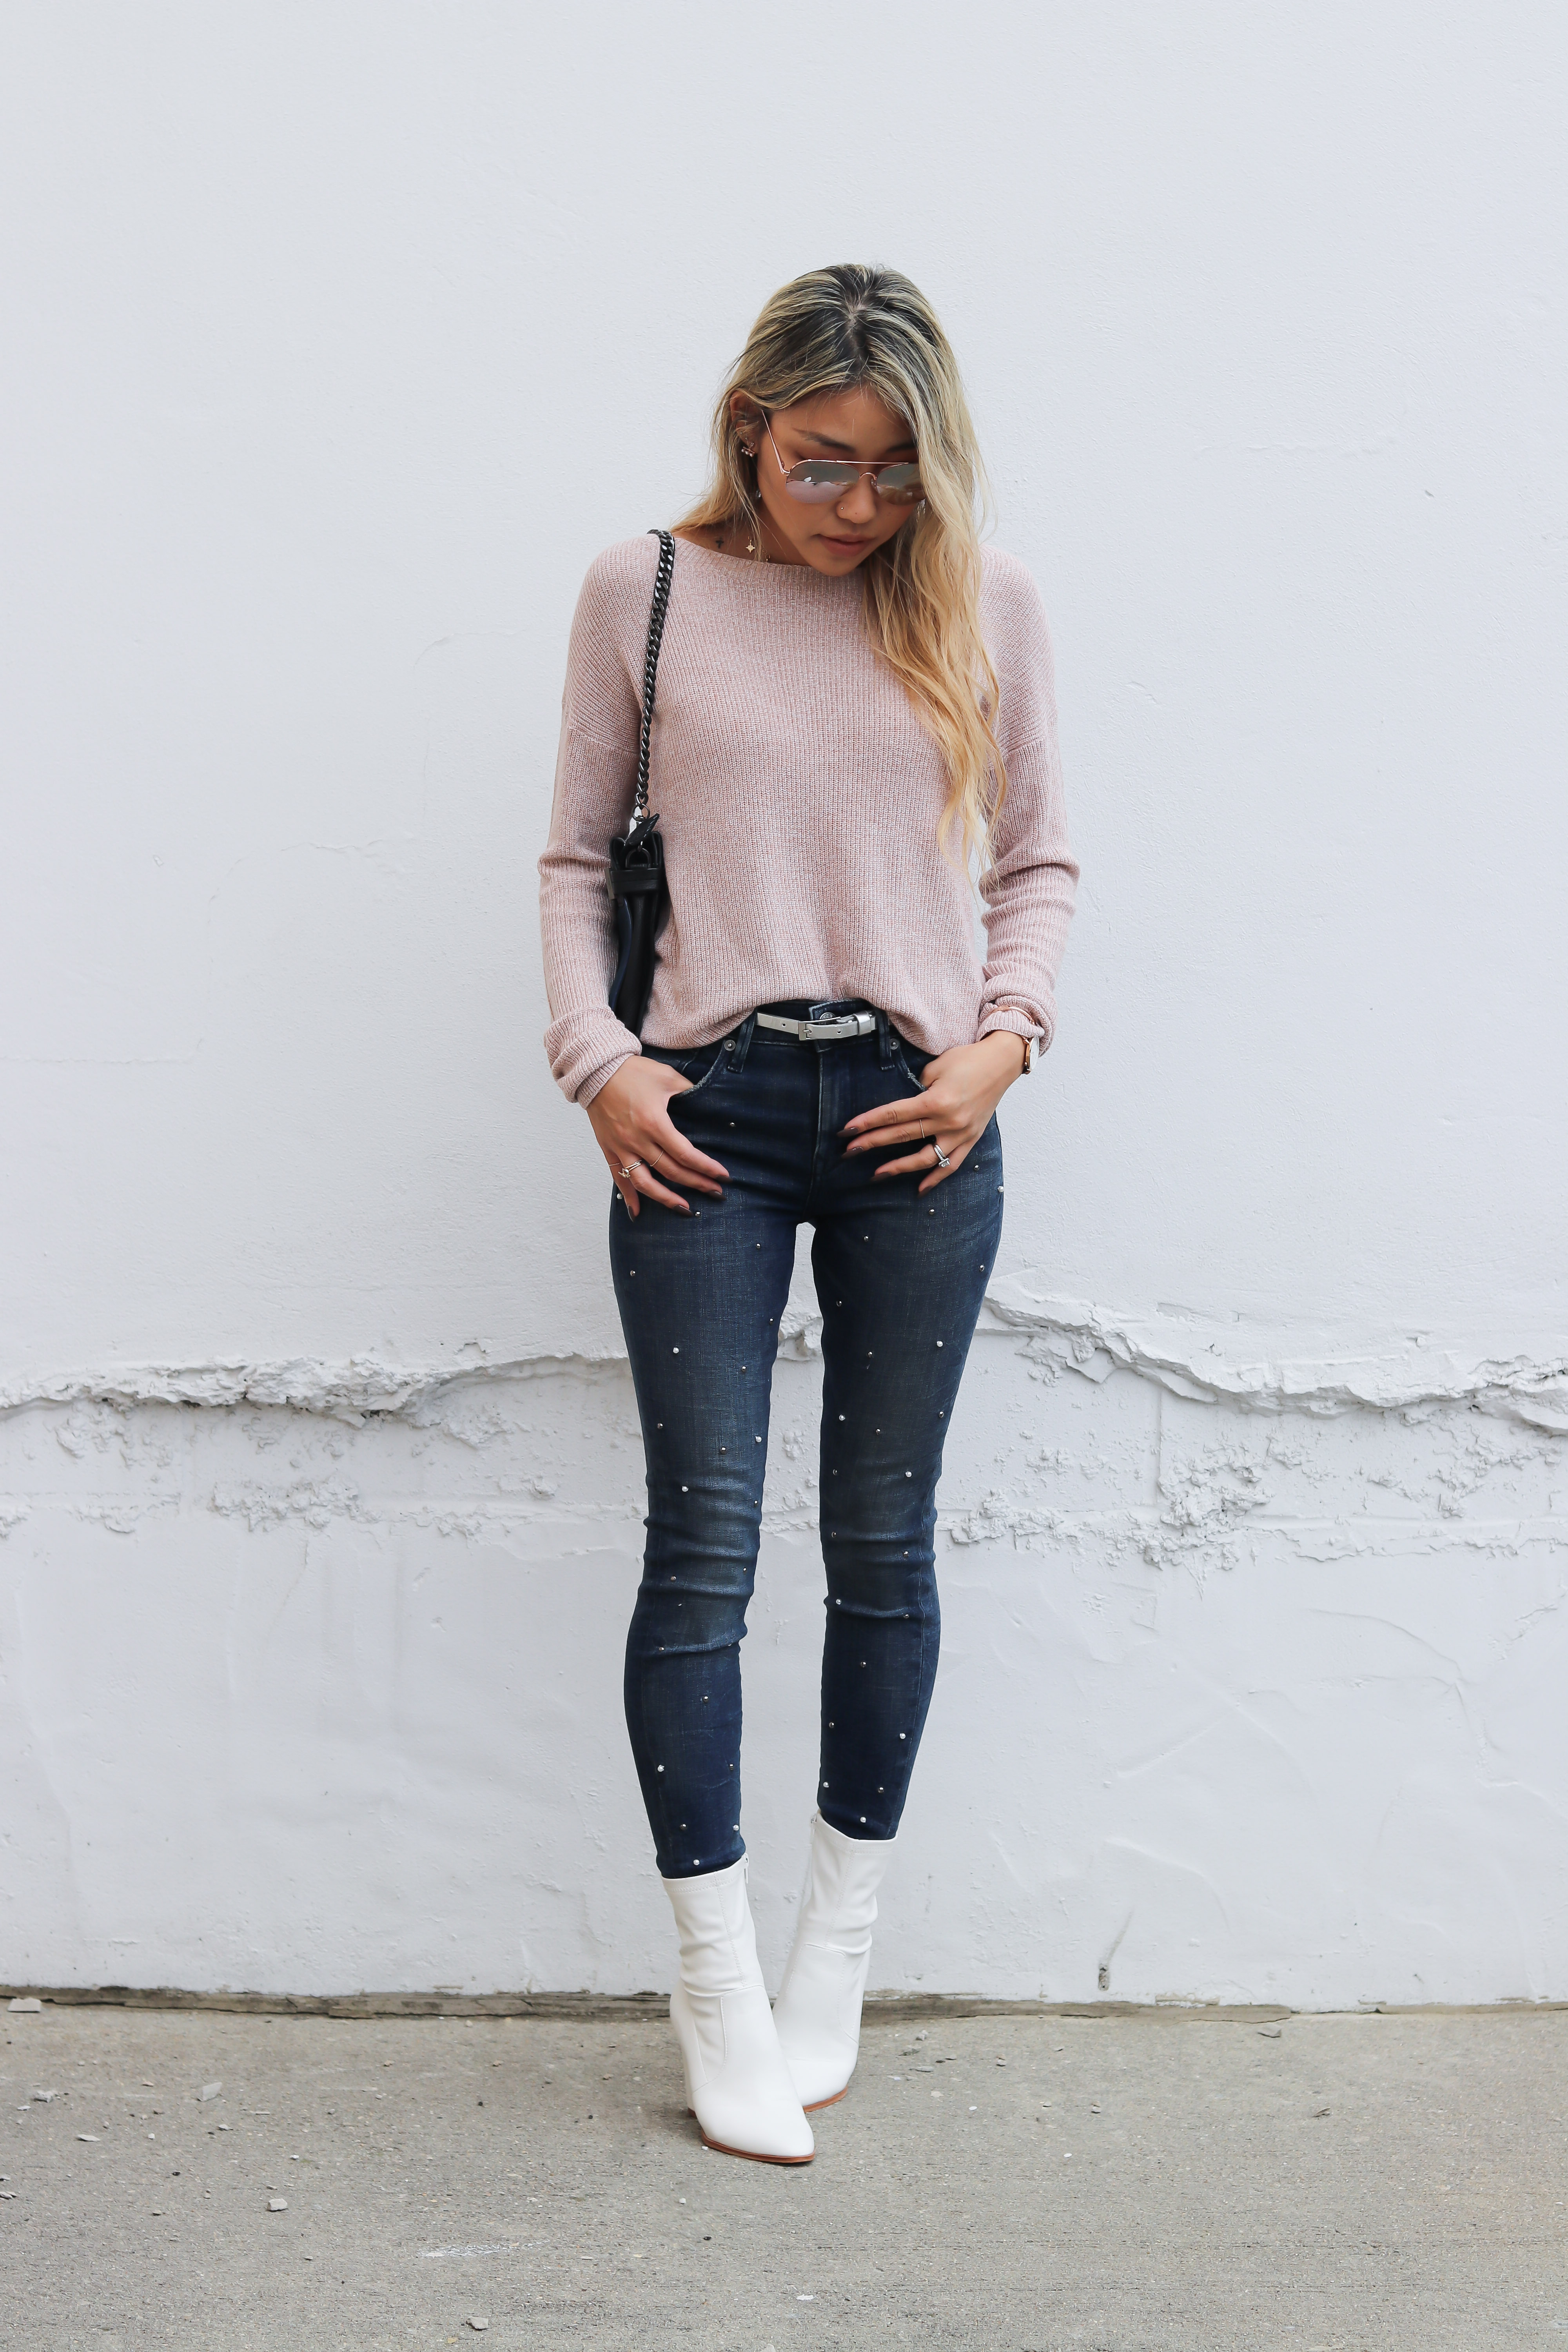 White Boots and Pearl Studded Jeans – L